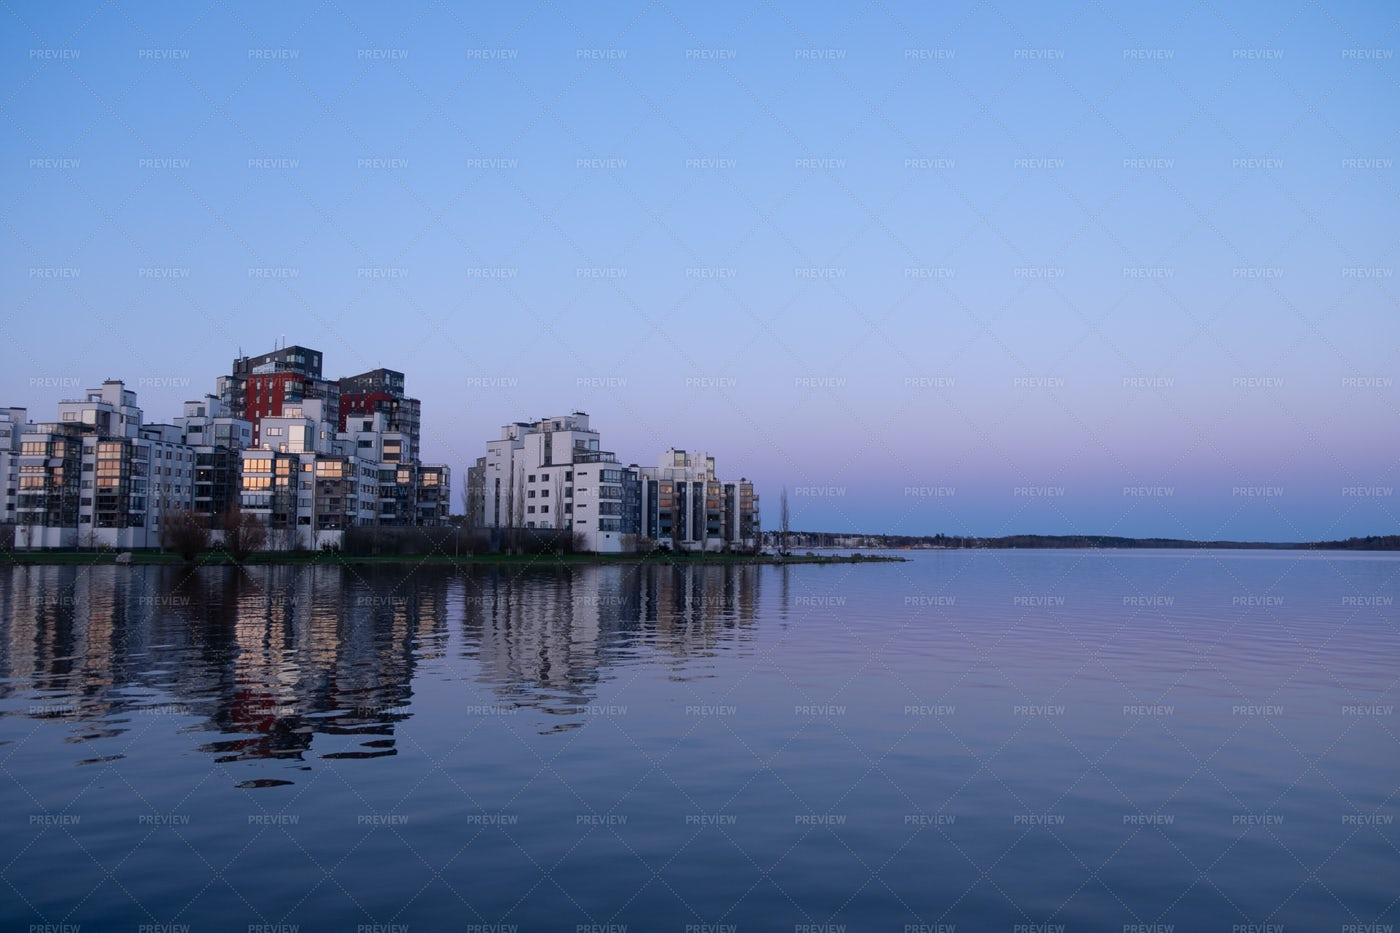 Apartment Buildings On Lake: Stock Photos